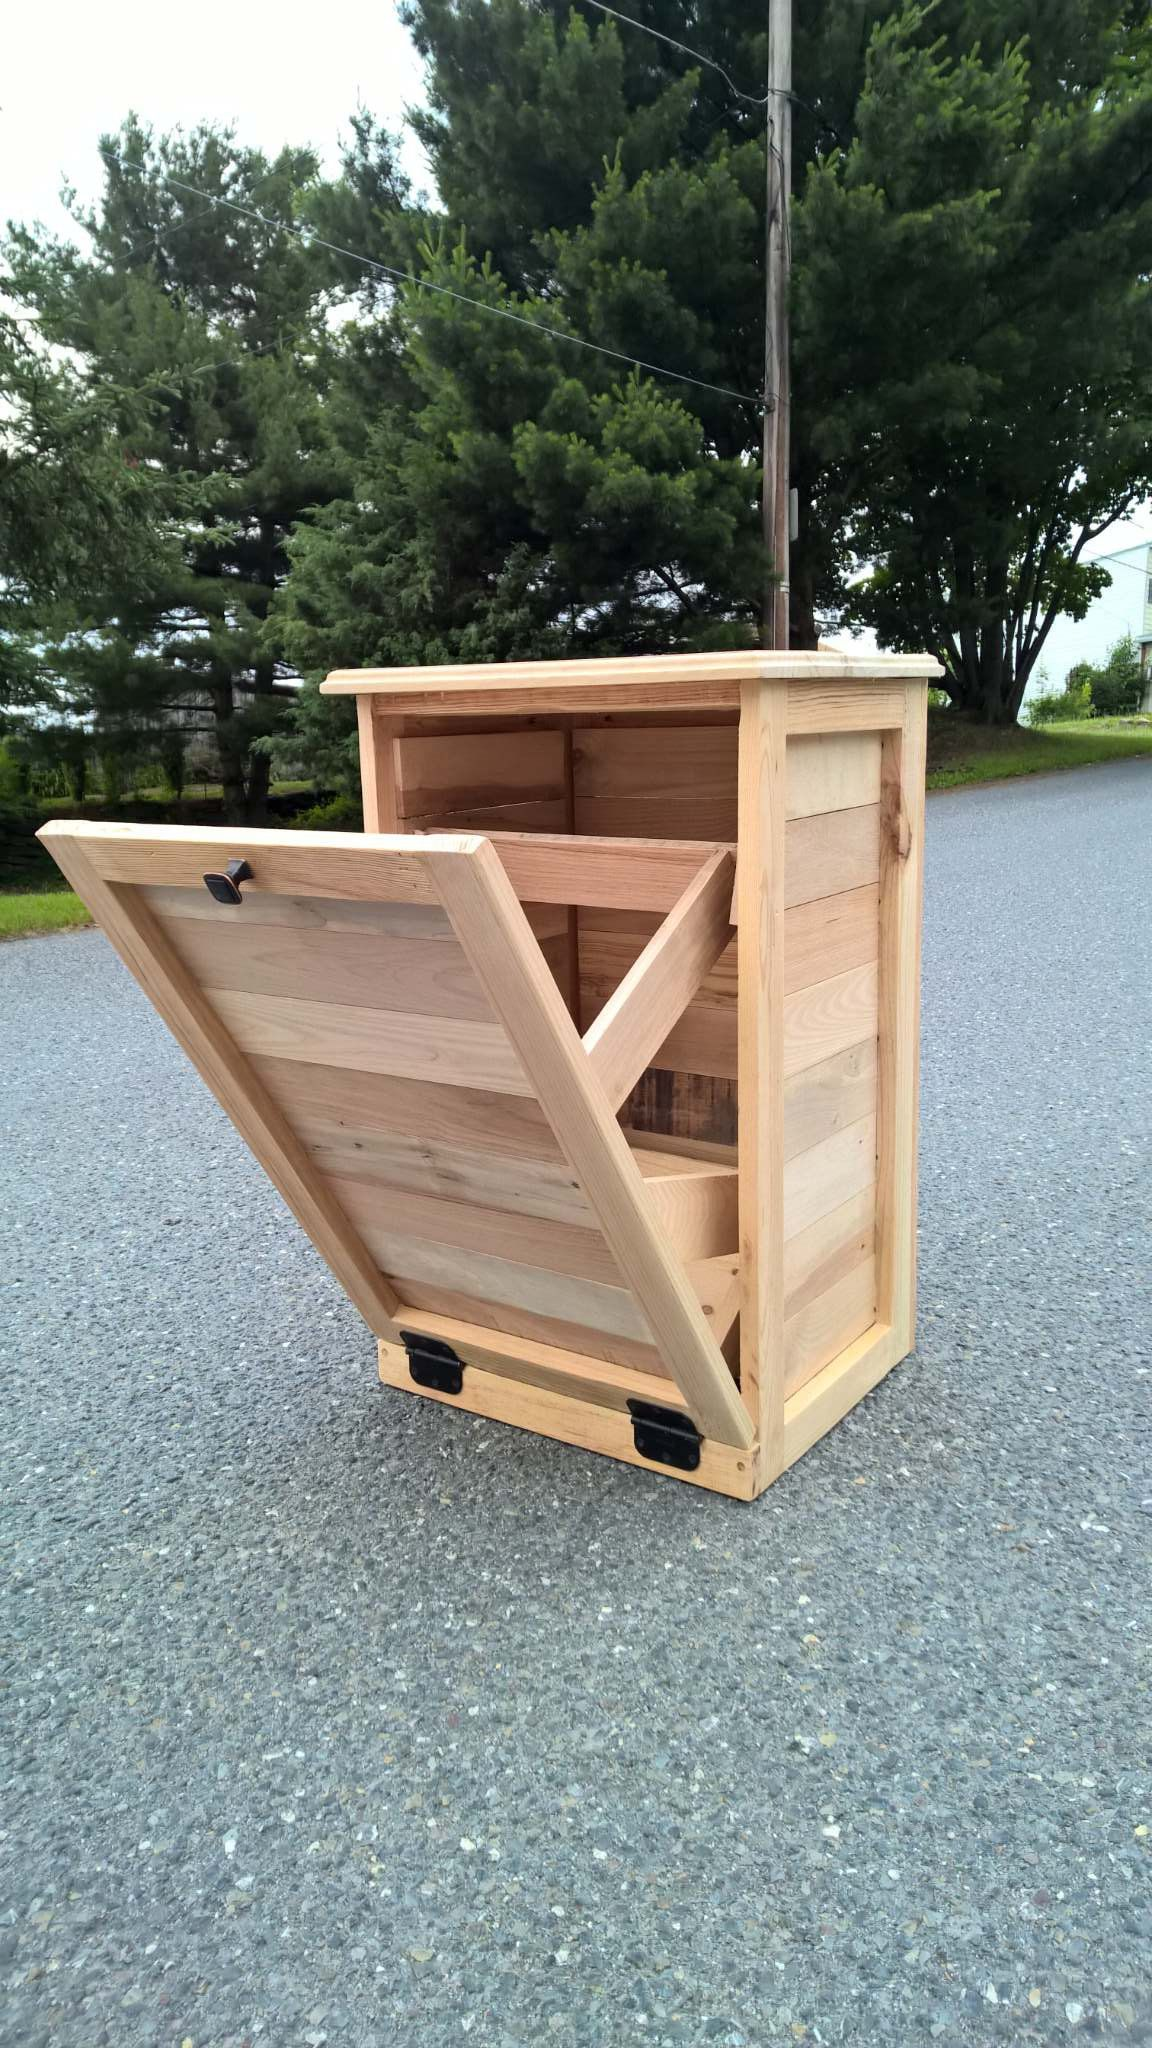 Tilt Out Garbage Can Wood Furniture Pallet wood Rustic